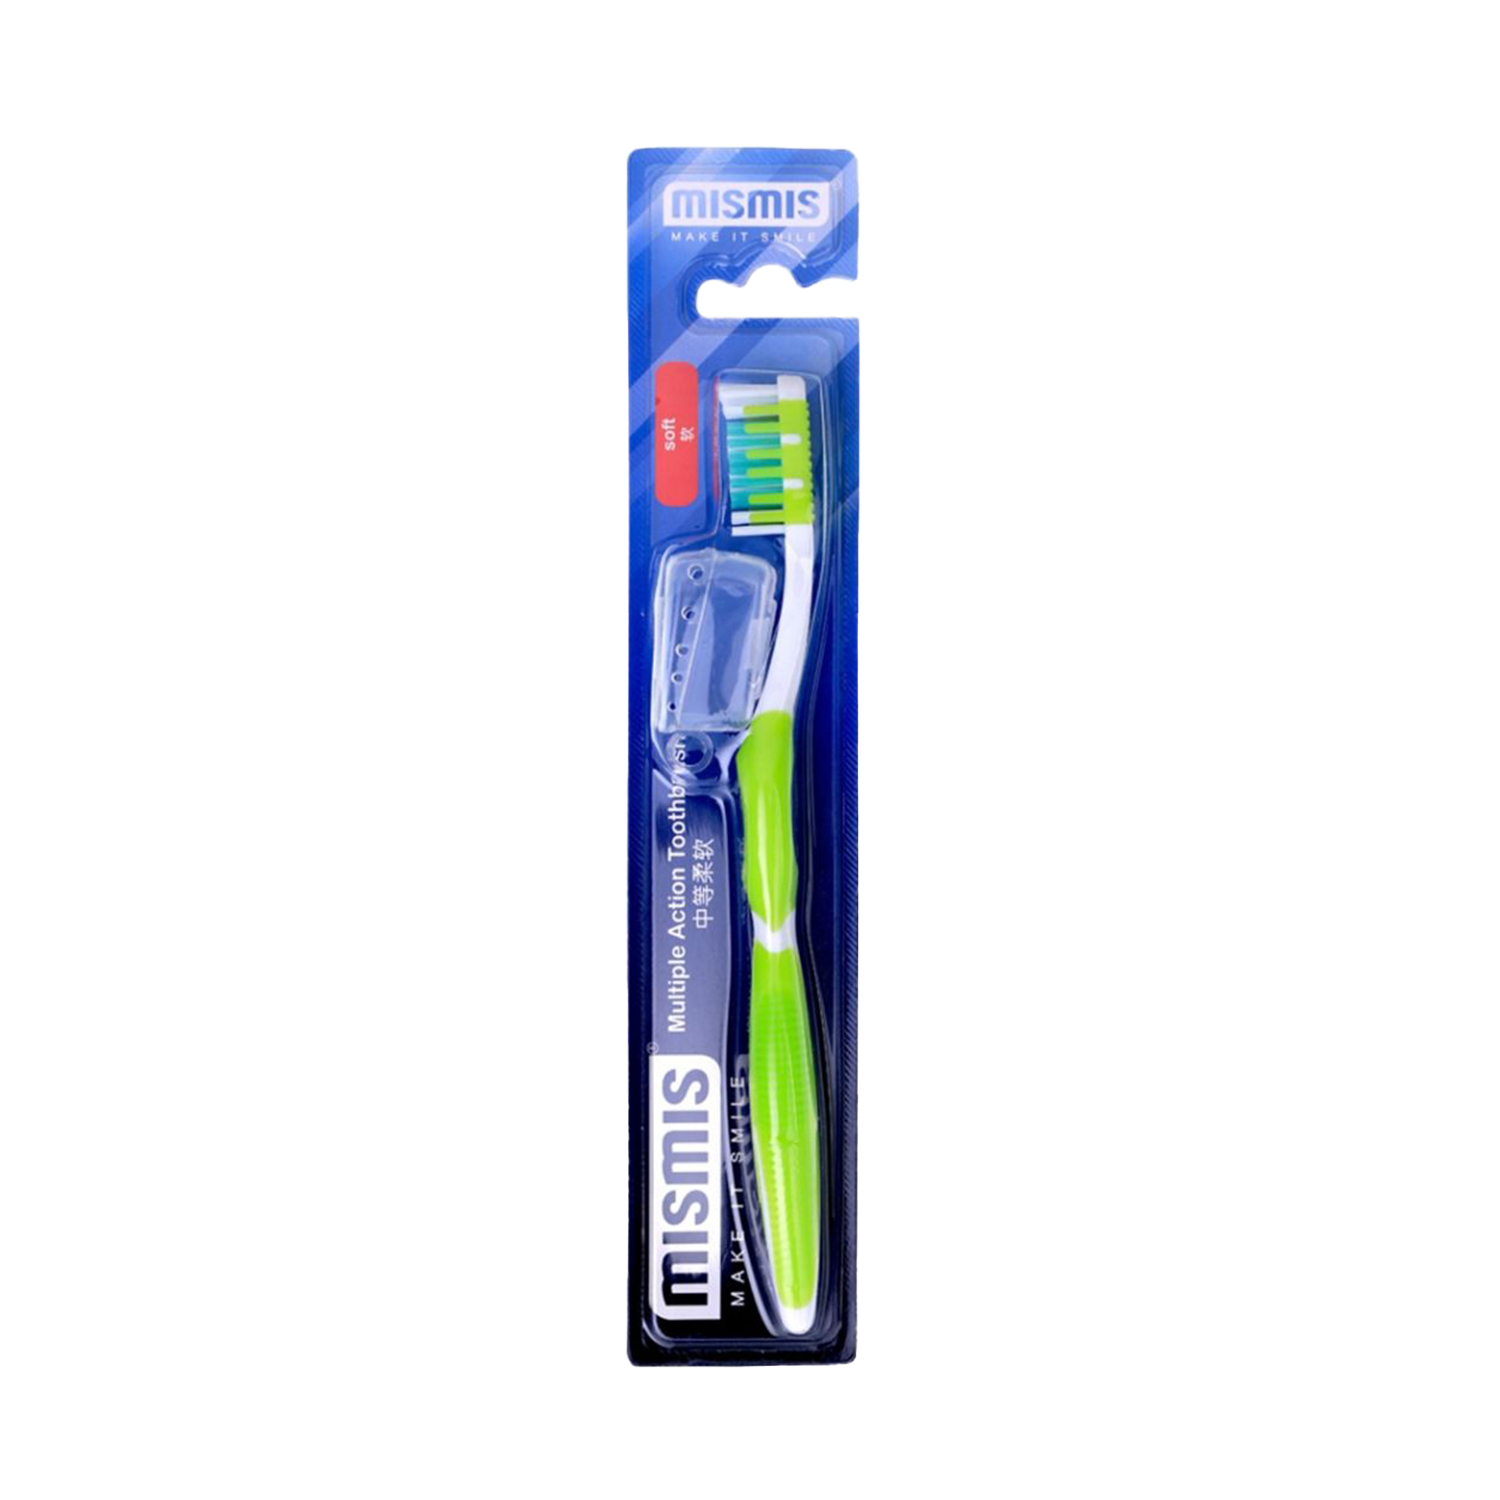 Mismis Multiple Action Toothbrush Soft